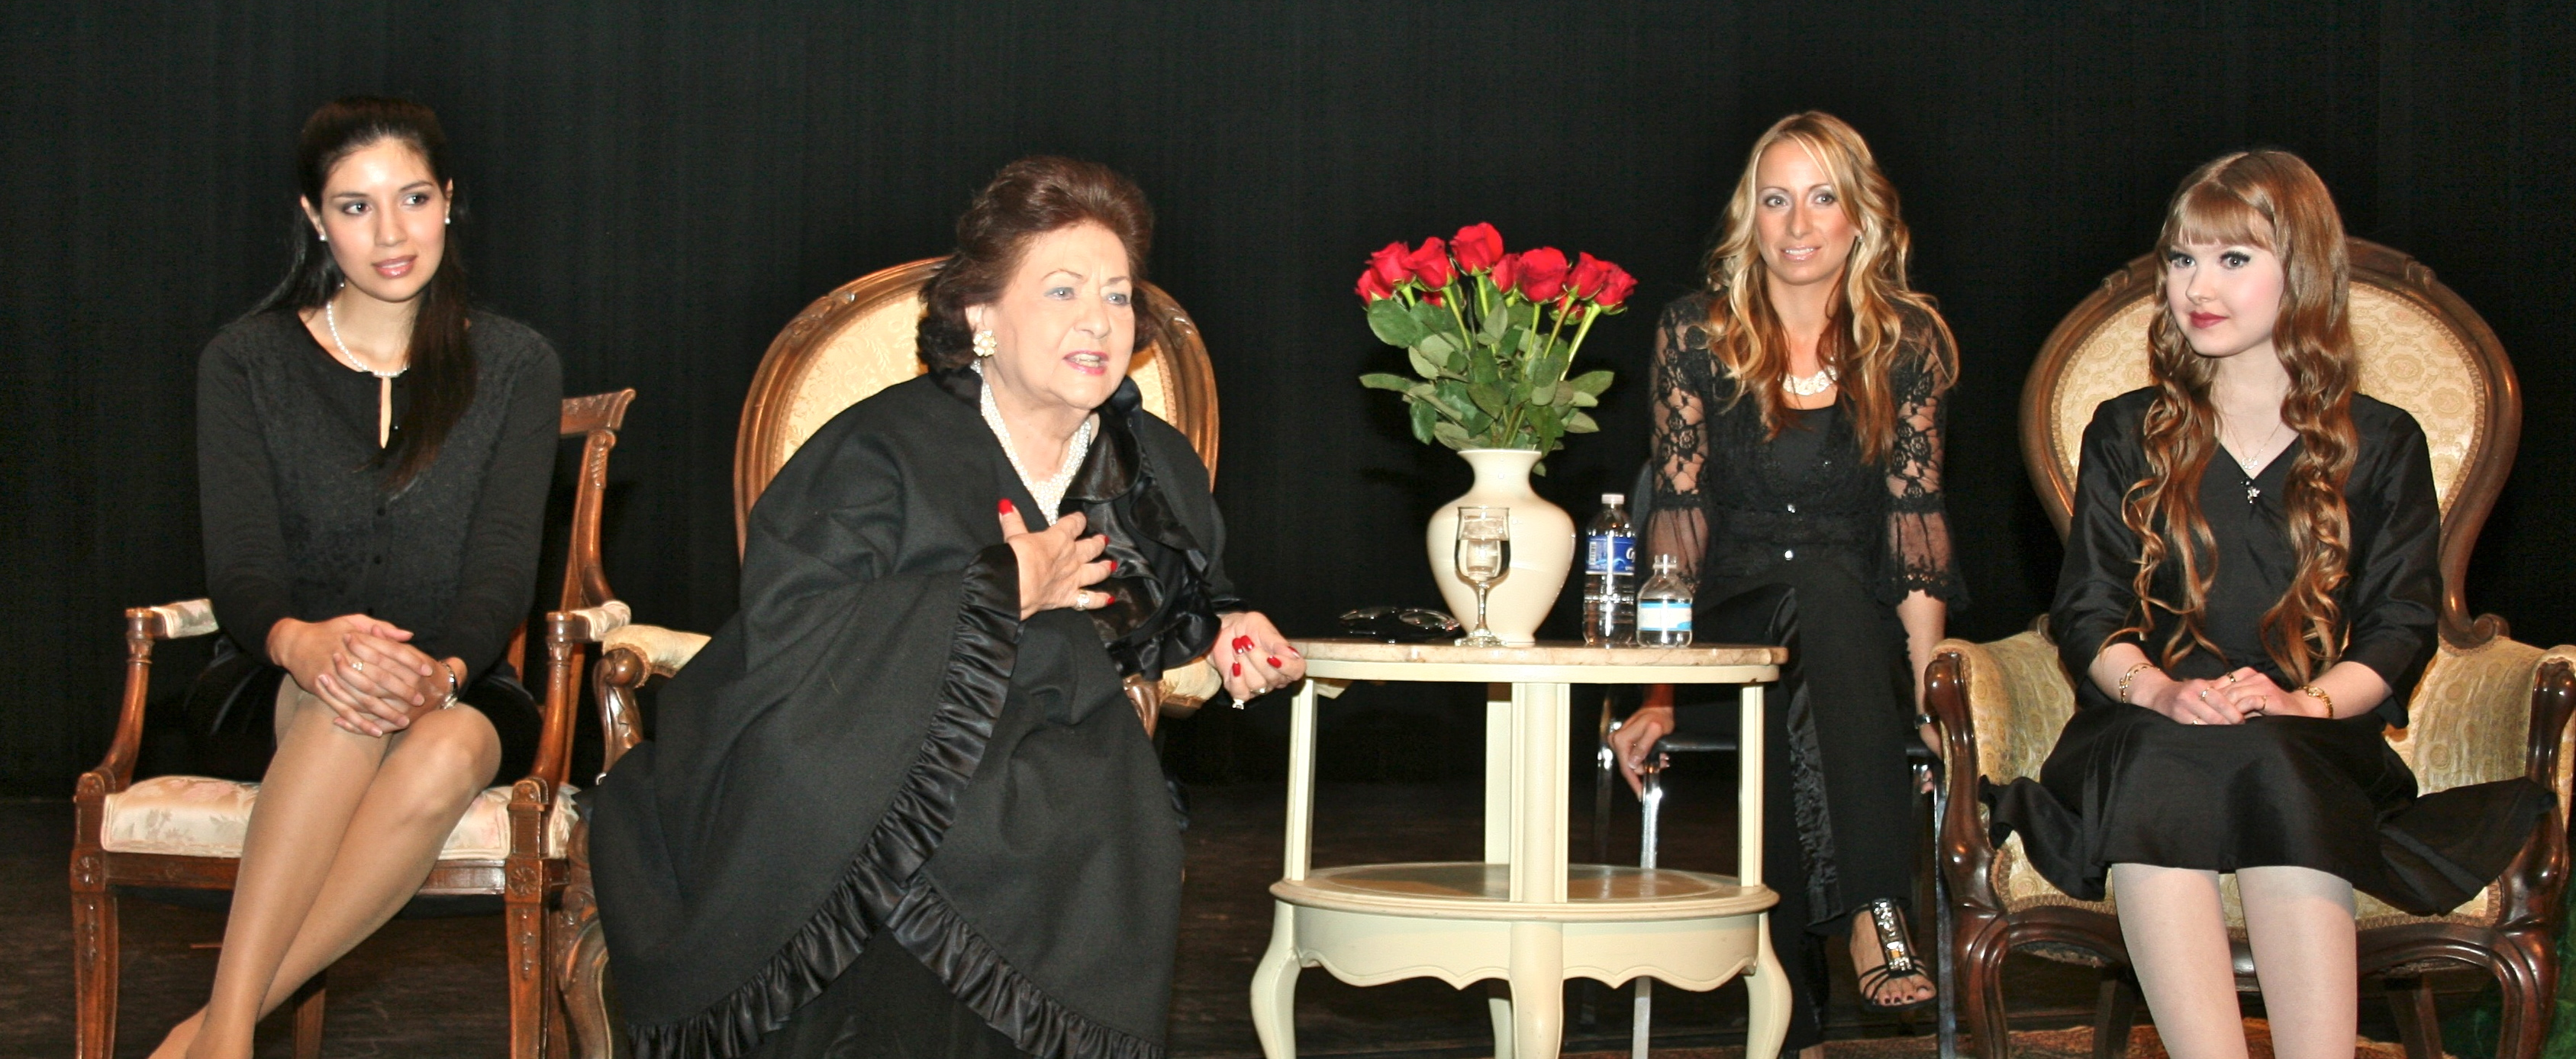 Vero Beach Opera Master Class with Maria Antunez, Lorrianna Colozzo, and Madison Marie McIntosh.